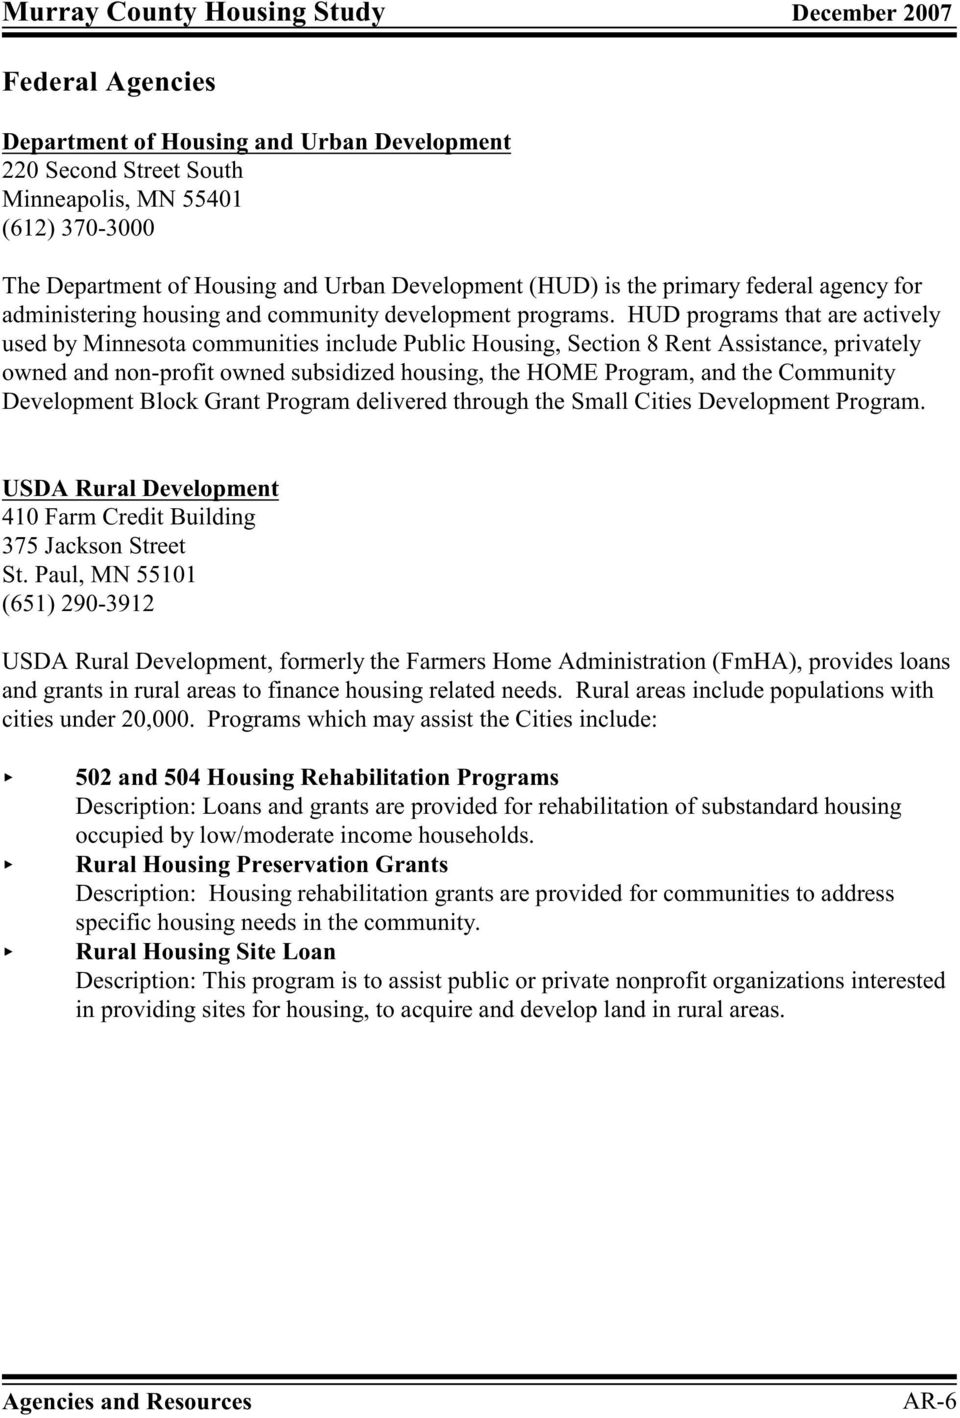 HUD programs that are actively used by Minnesota communities include Public Housing, Section 8 Rent Assistance, privately owned and non-profit owned subsidized housing, the HOME Program, and the